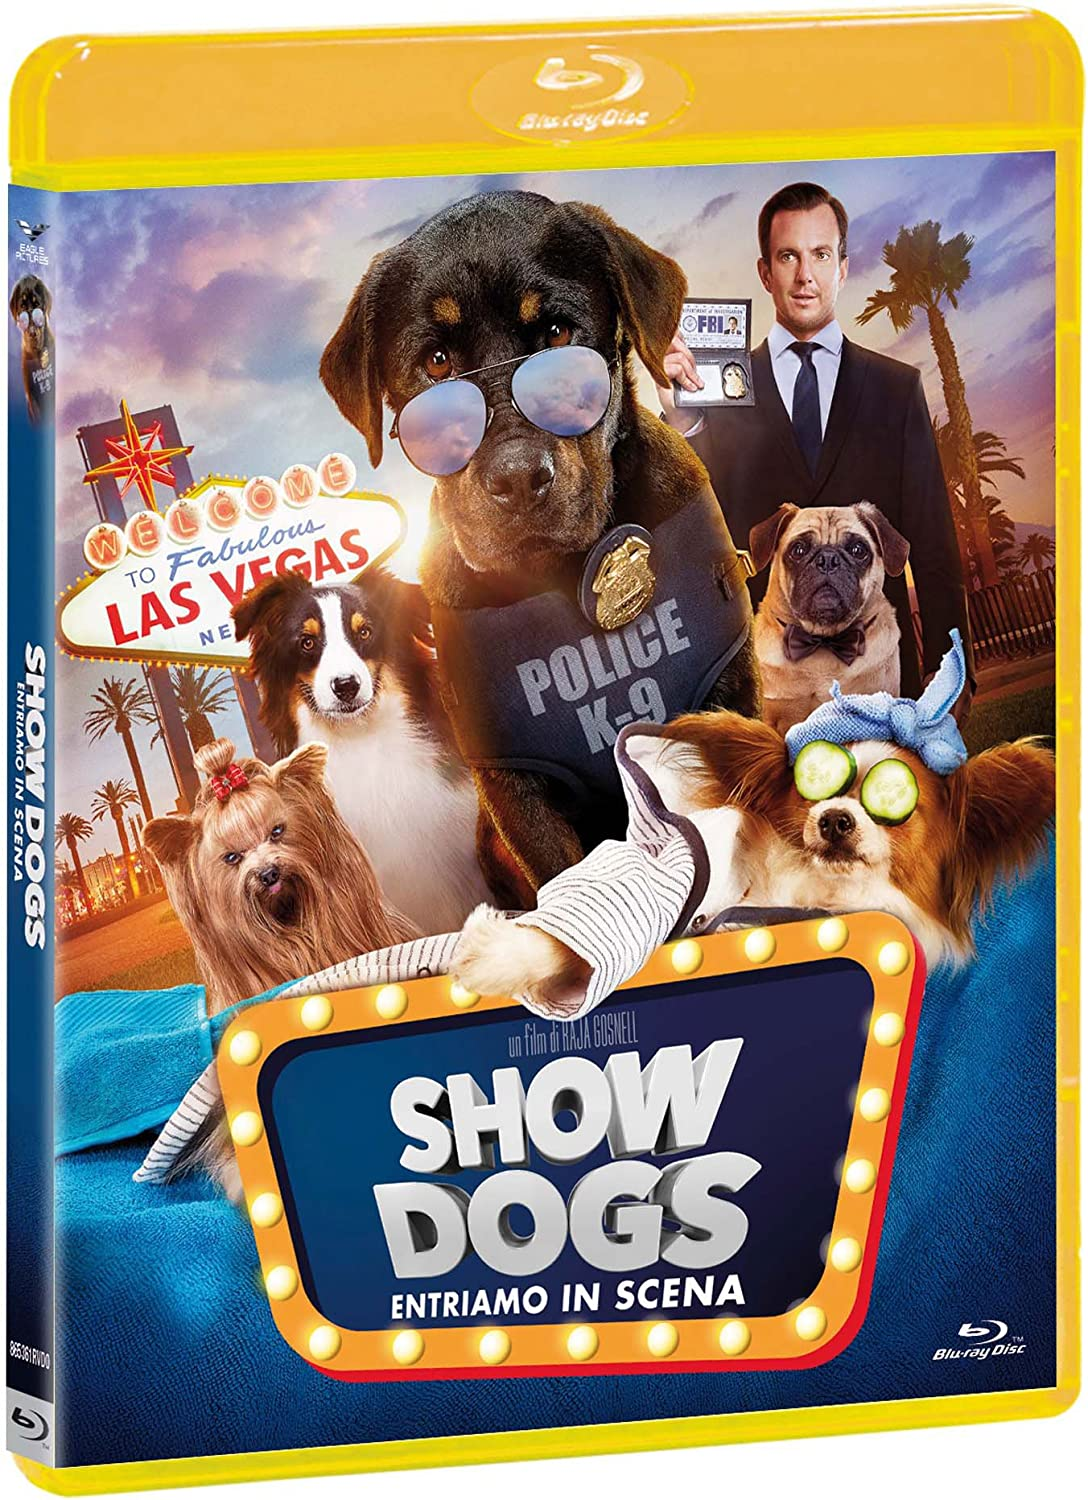 Show Dogs Blu Ray Bluray Italian Import Amazon Co Uk Natasha Lyonne Will Arnett Raja Gosnell Dvd Blu Ray